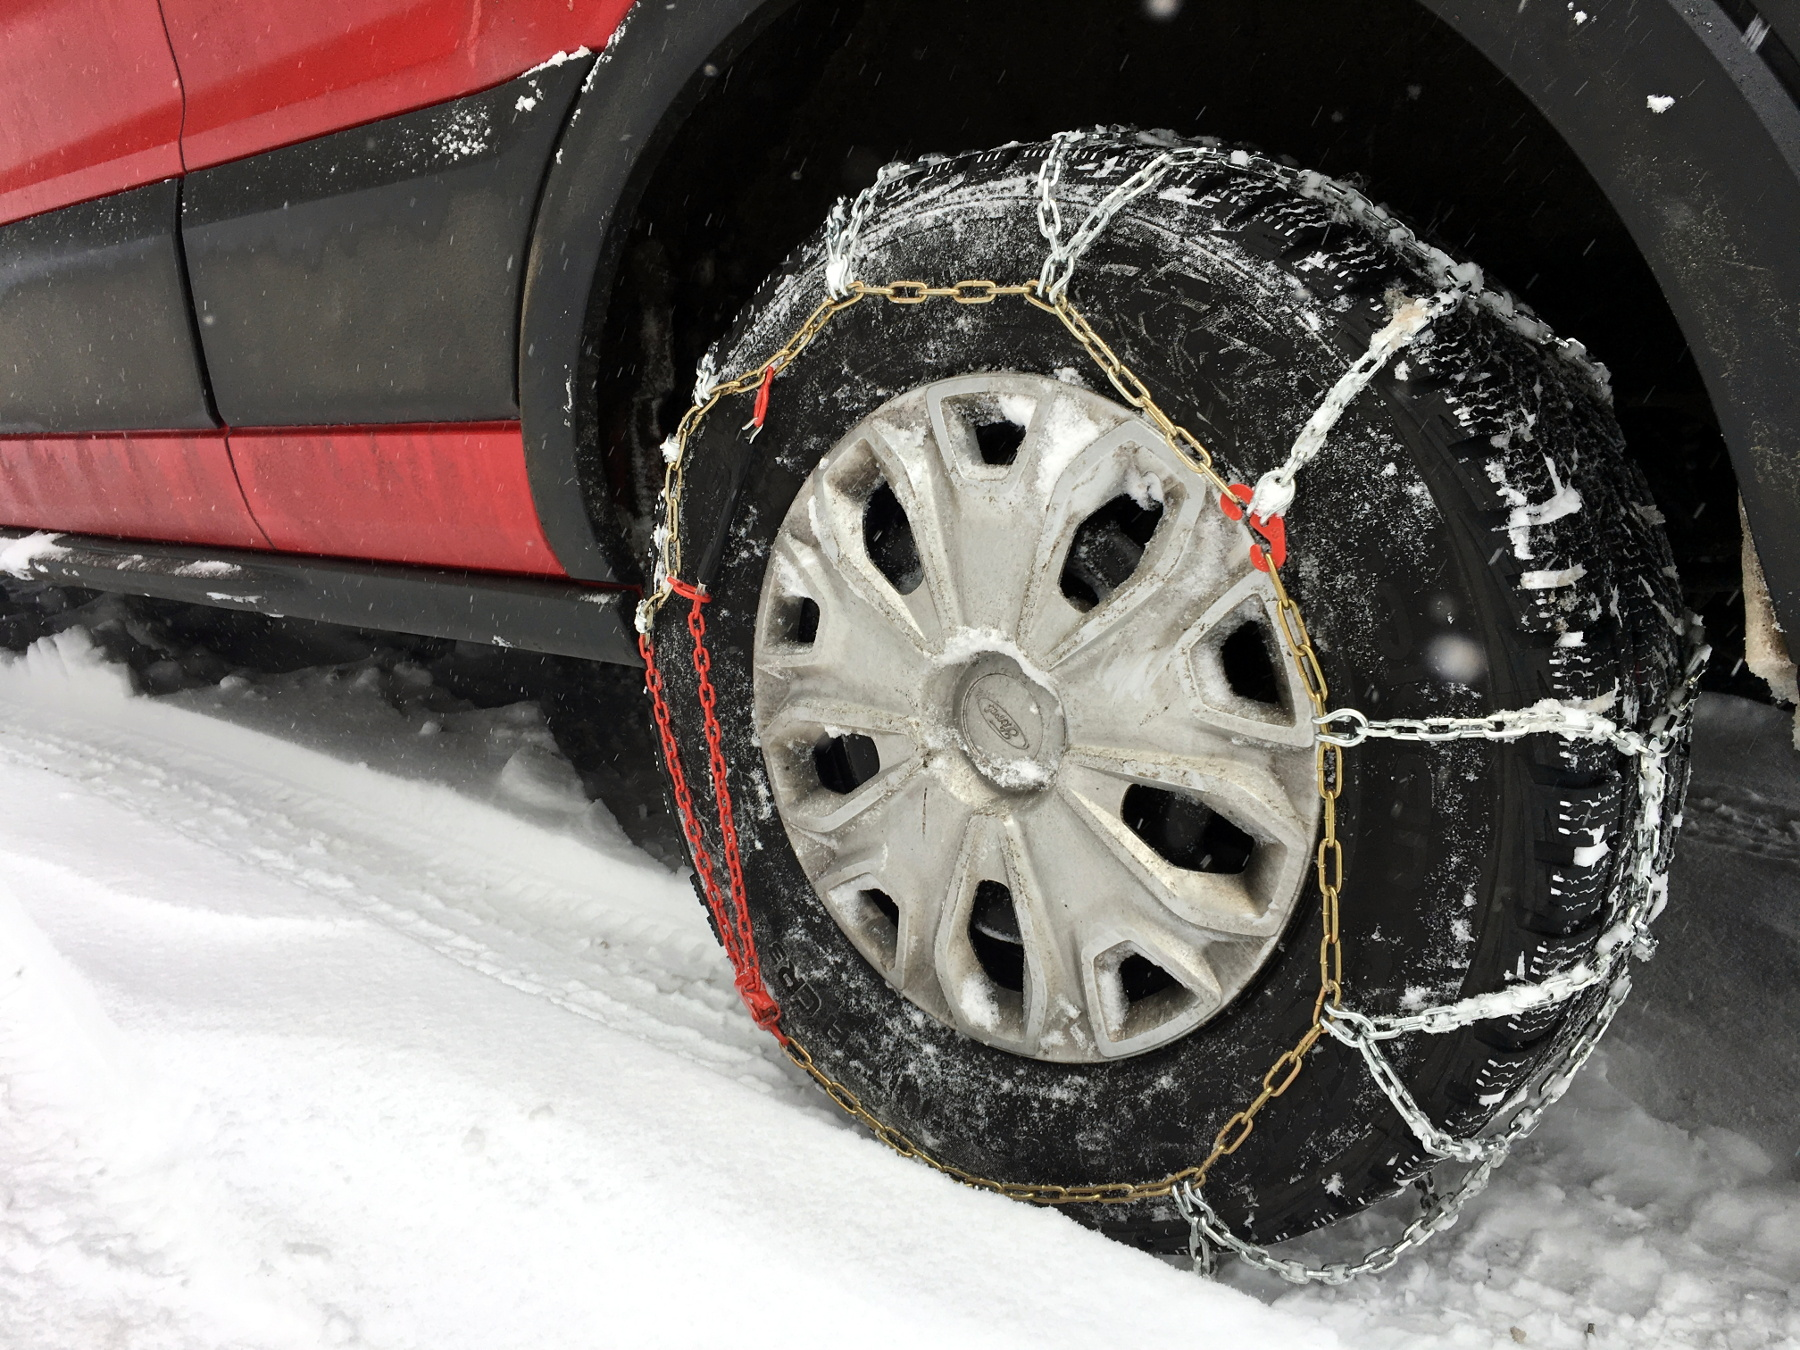 snow-driving-in-cargo-van-with-chains